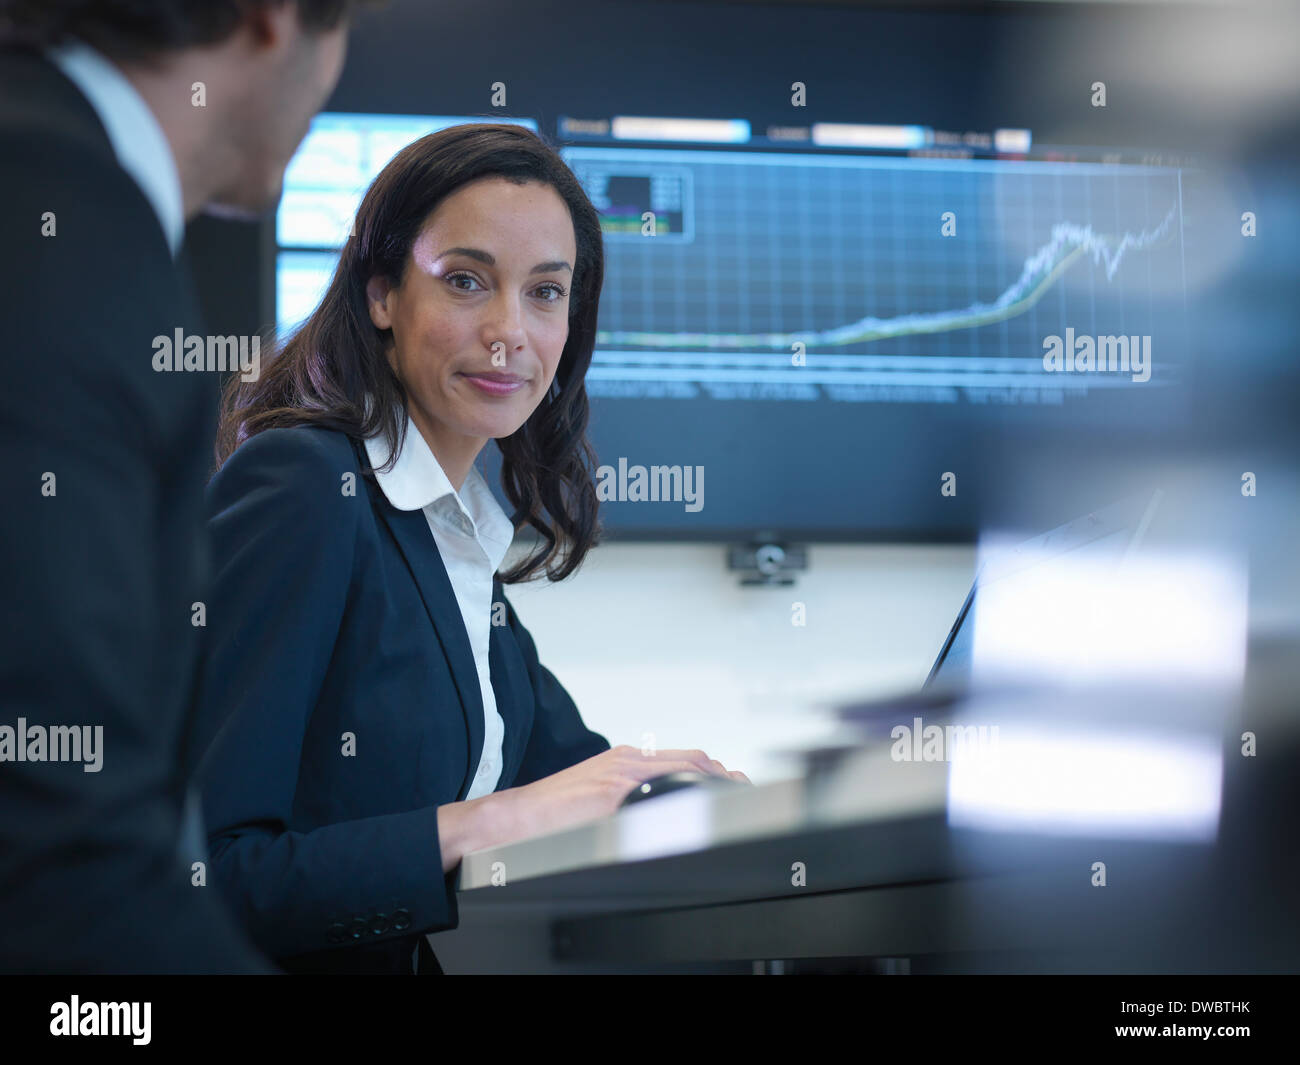 Portrait of businesswoman in meeting in front of screen in office - Stock Image